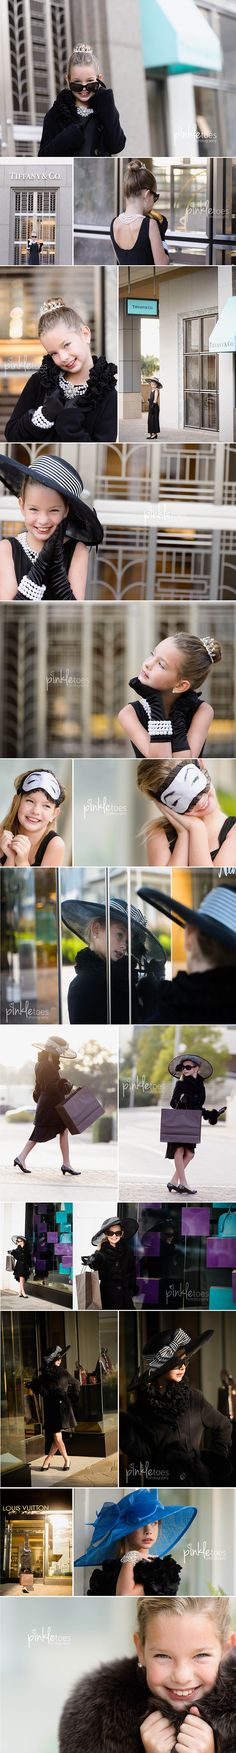 Breakfast at Tiffany's - By Pinkletoes Photography